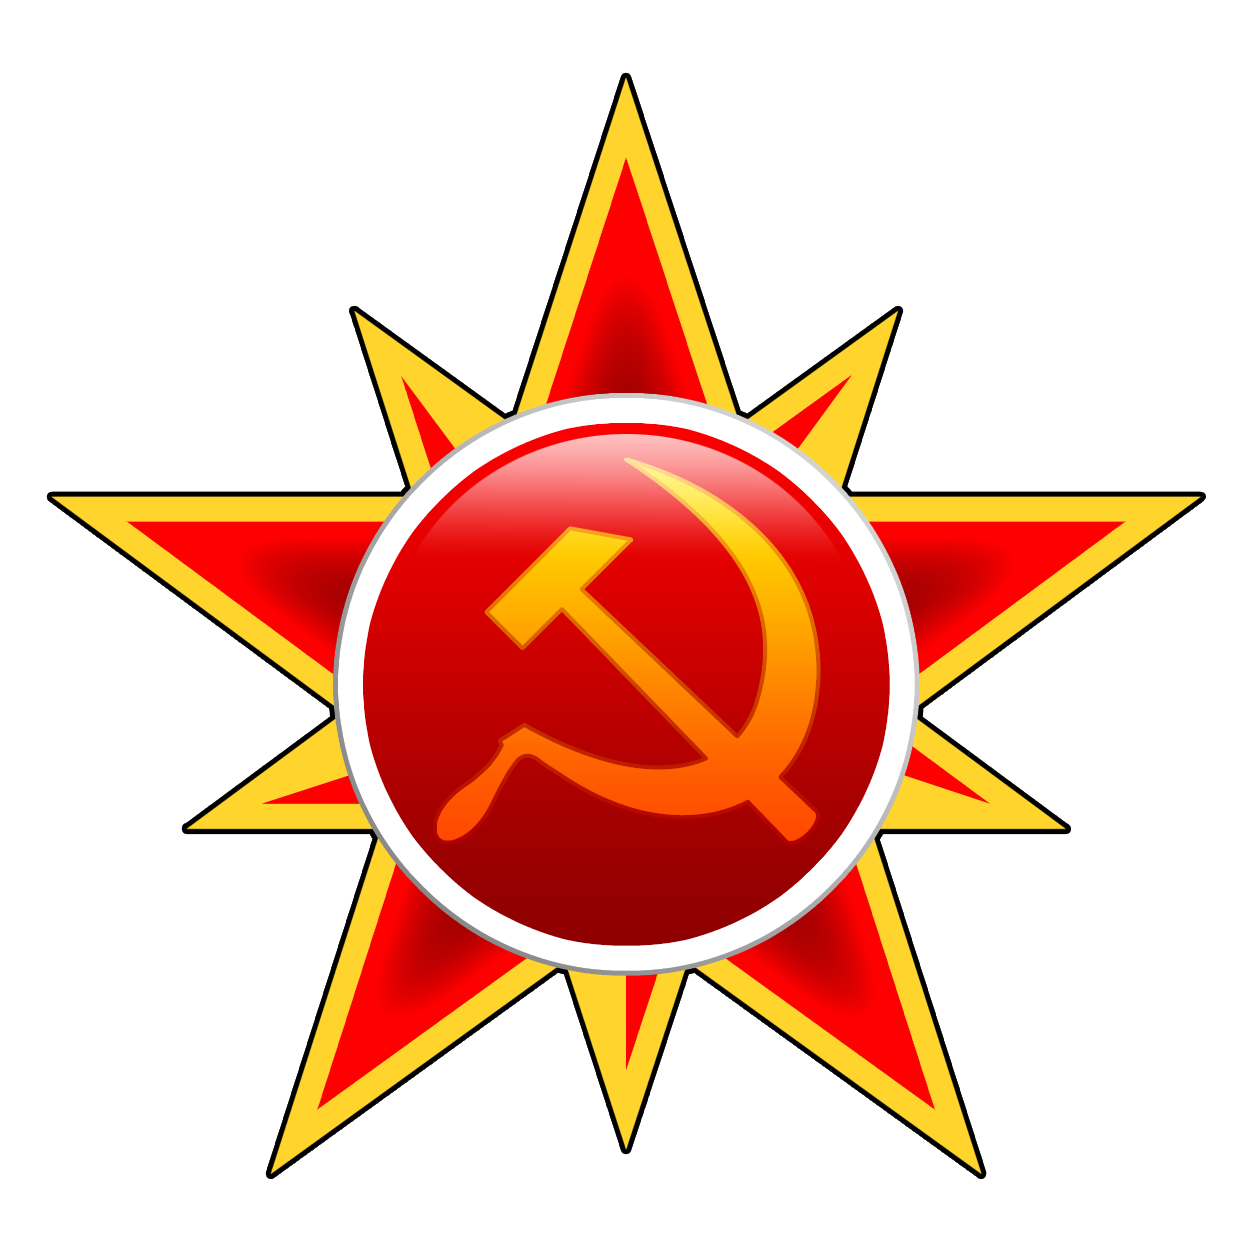 russian space program symbol - photo #36